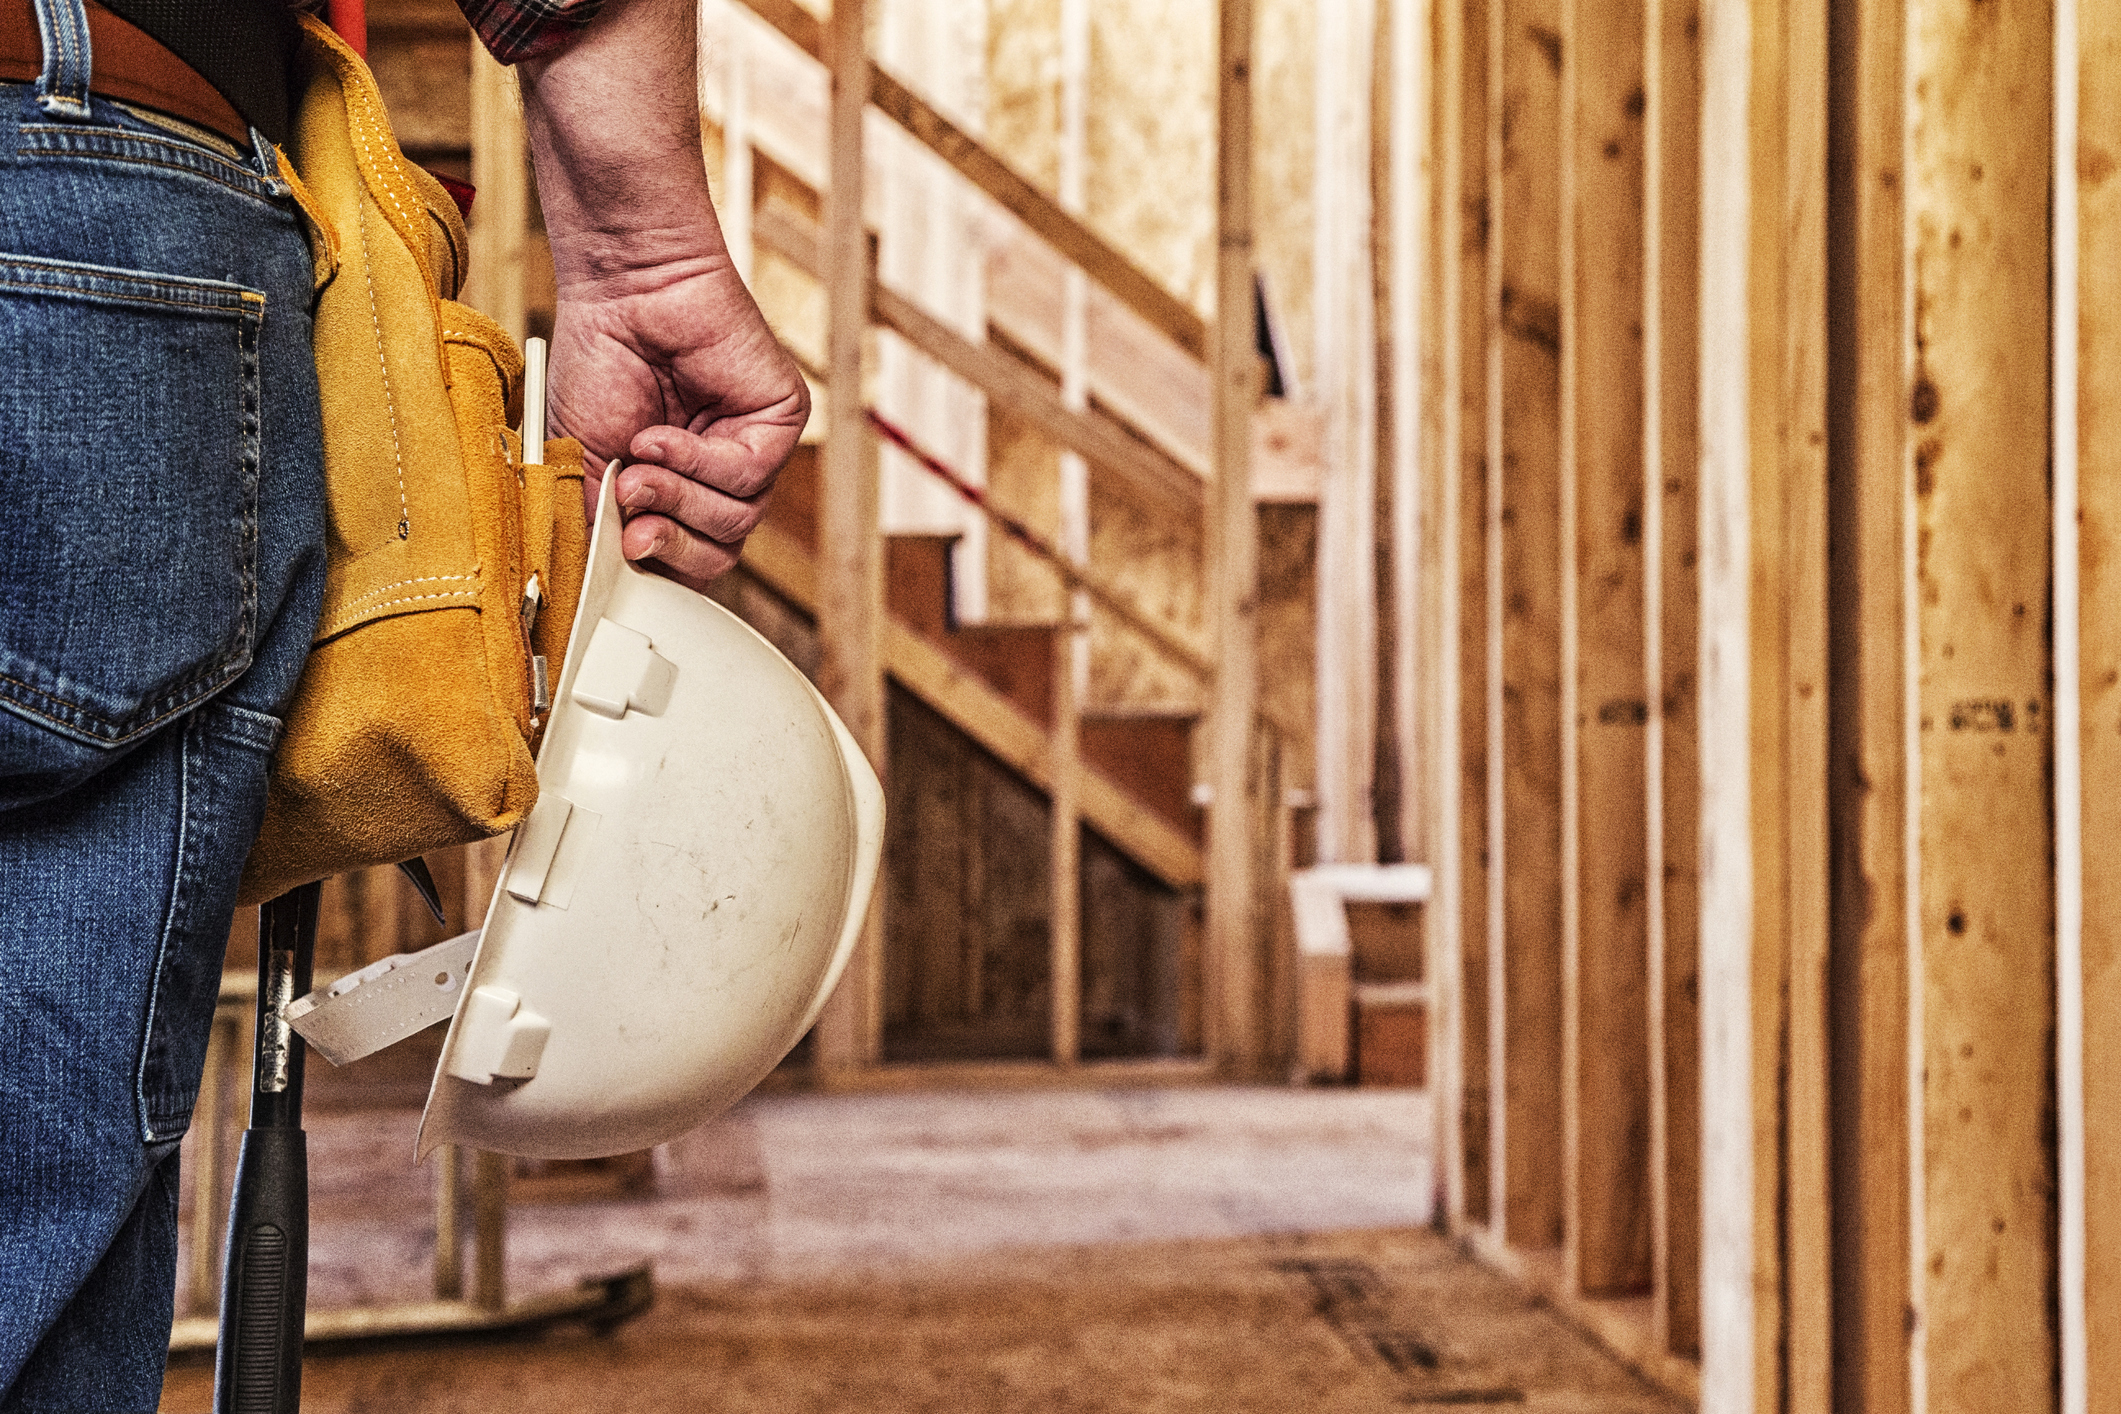 Workers' Compensation -